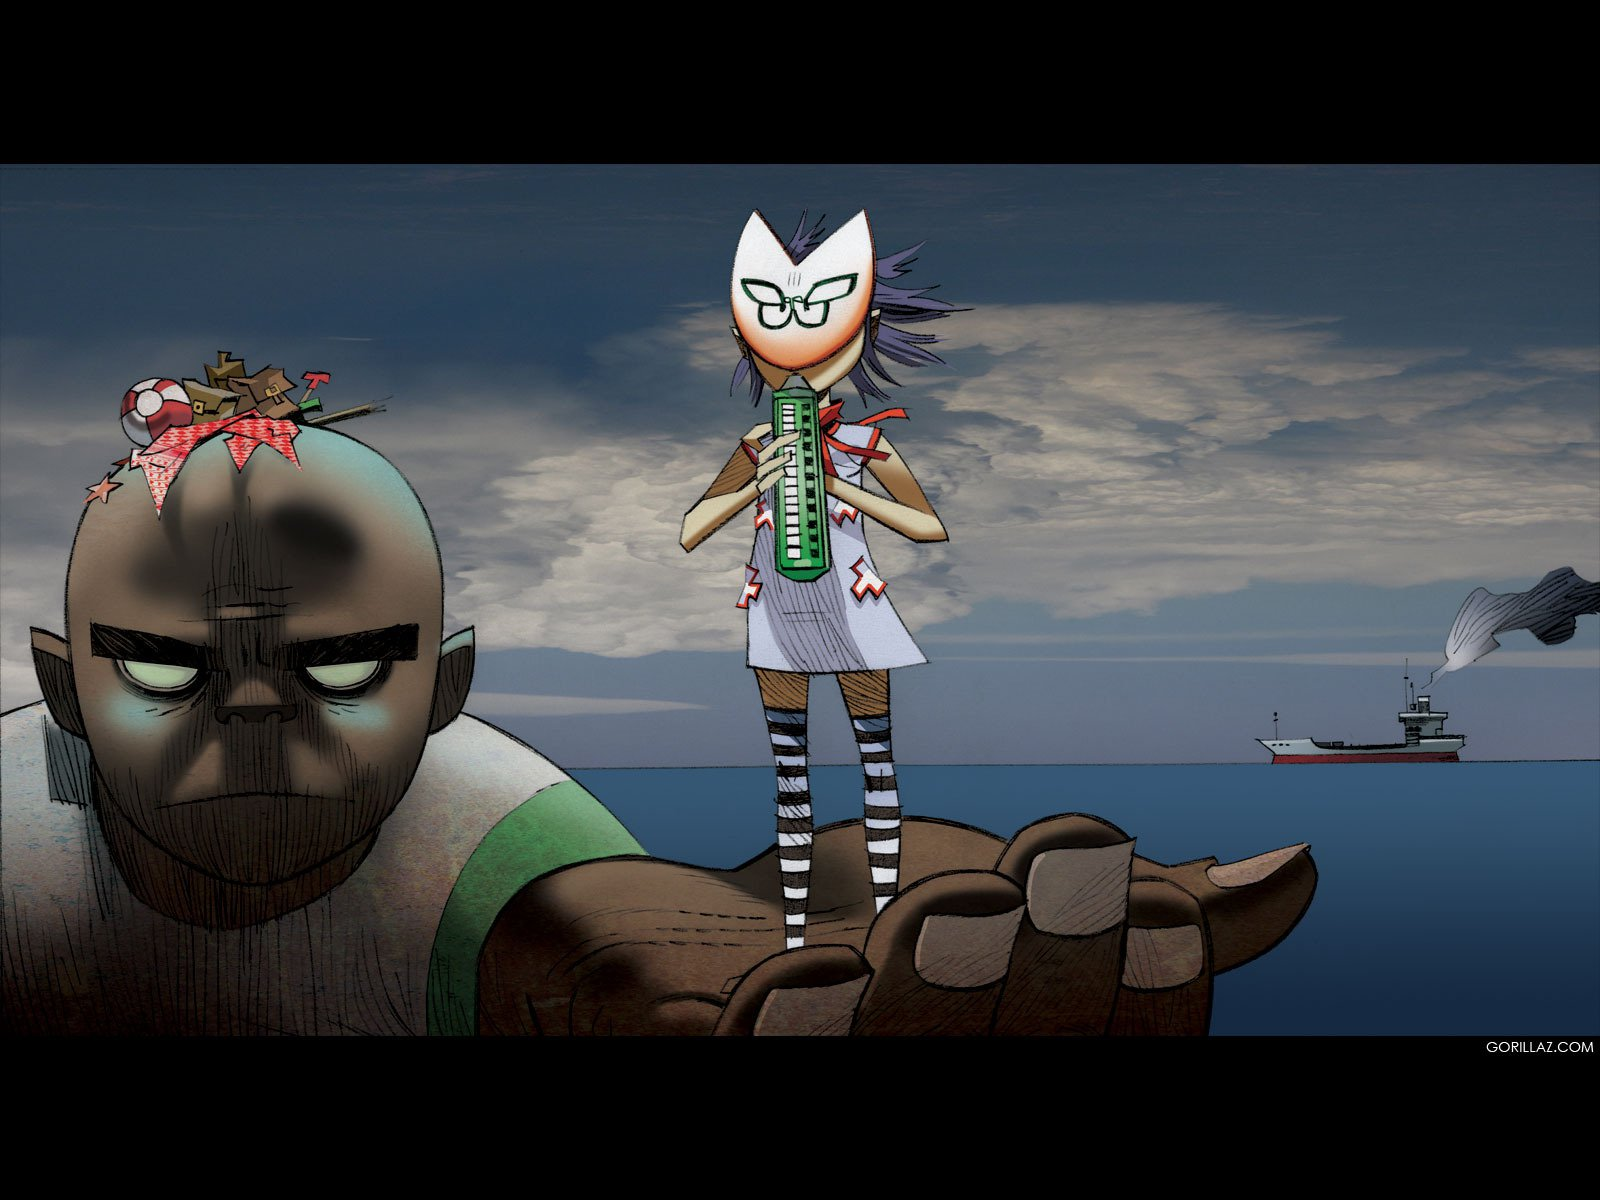 gorillaz wallpapers plastic beach - photo #9